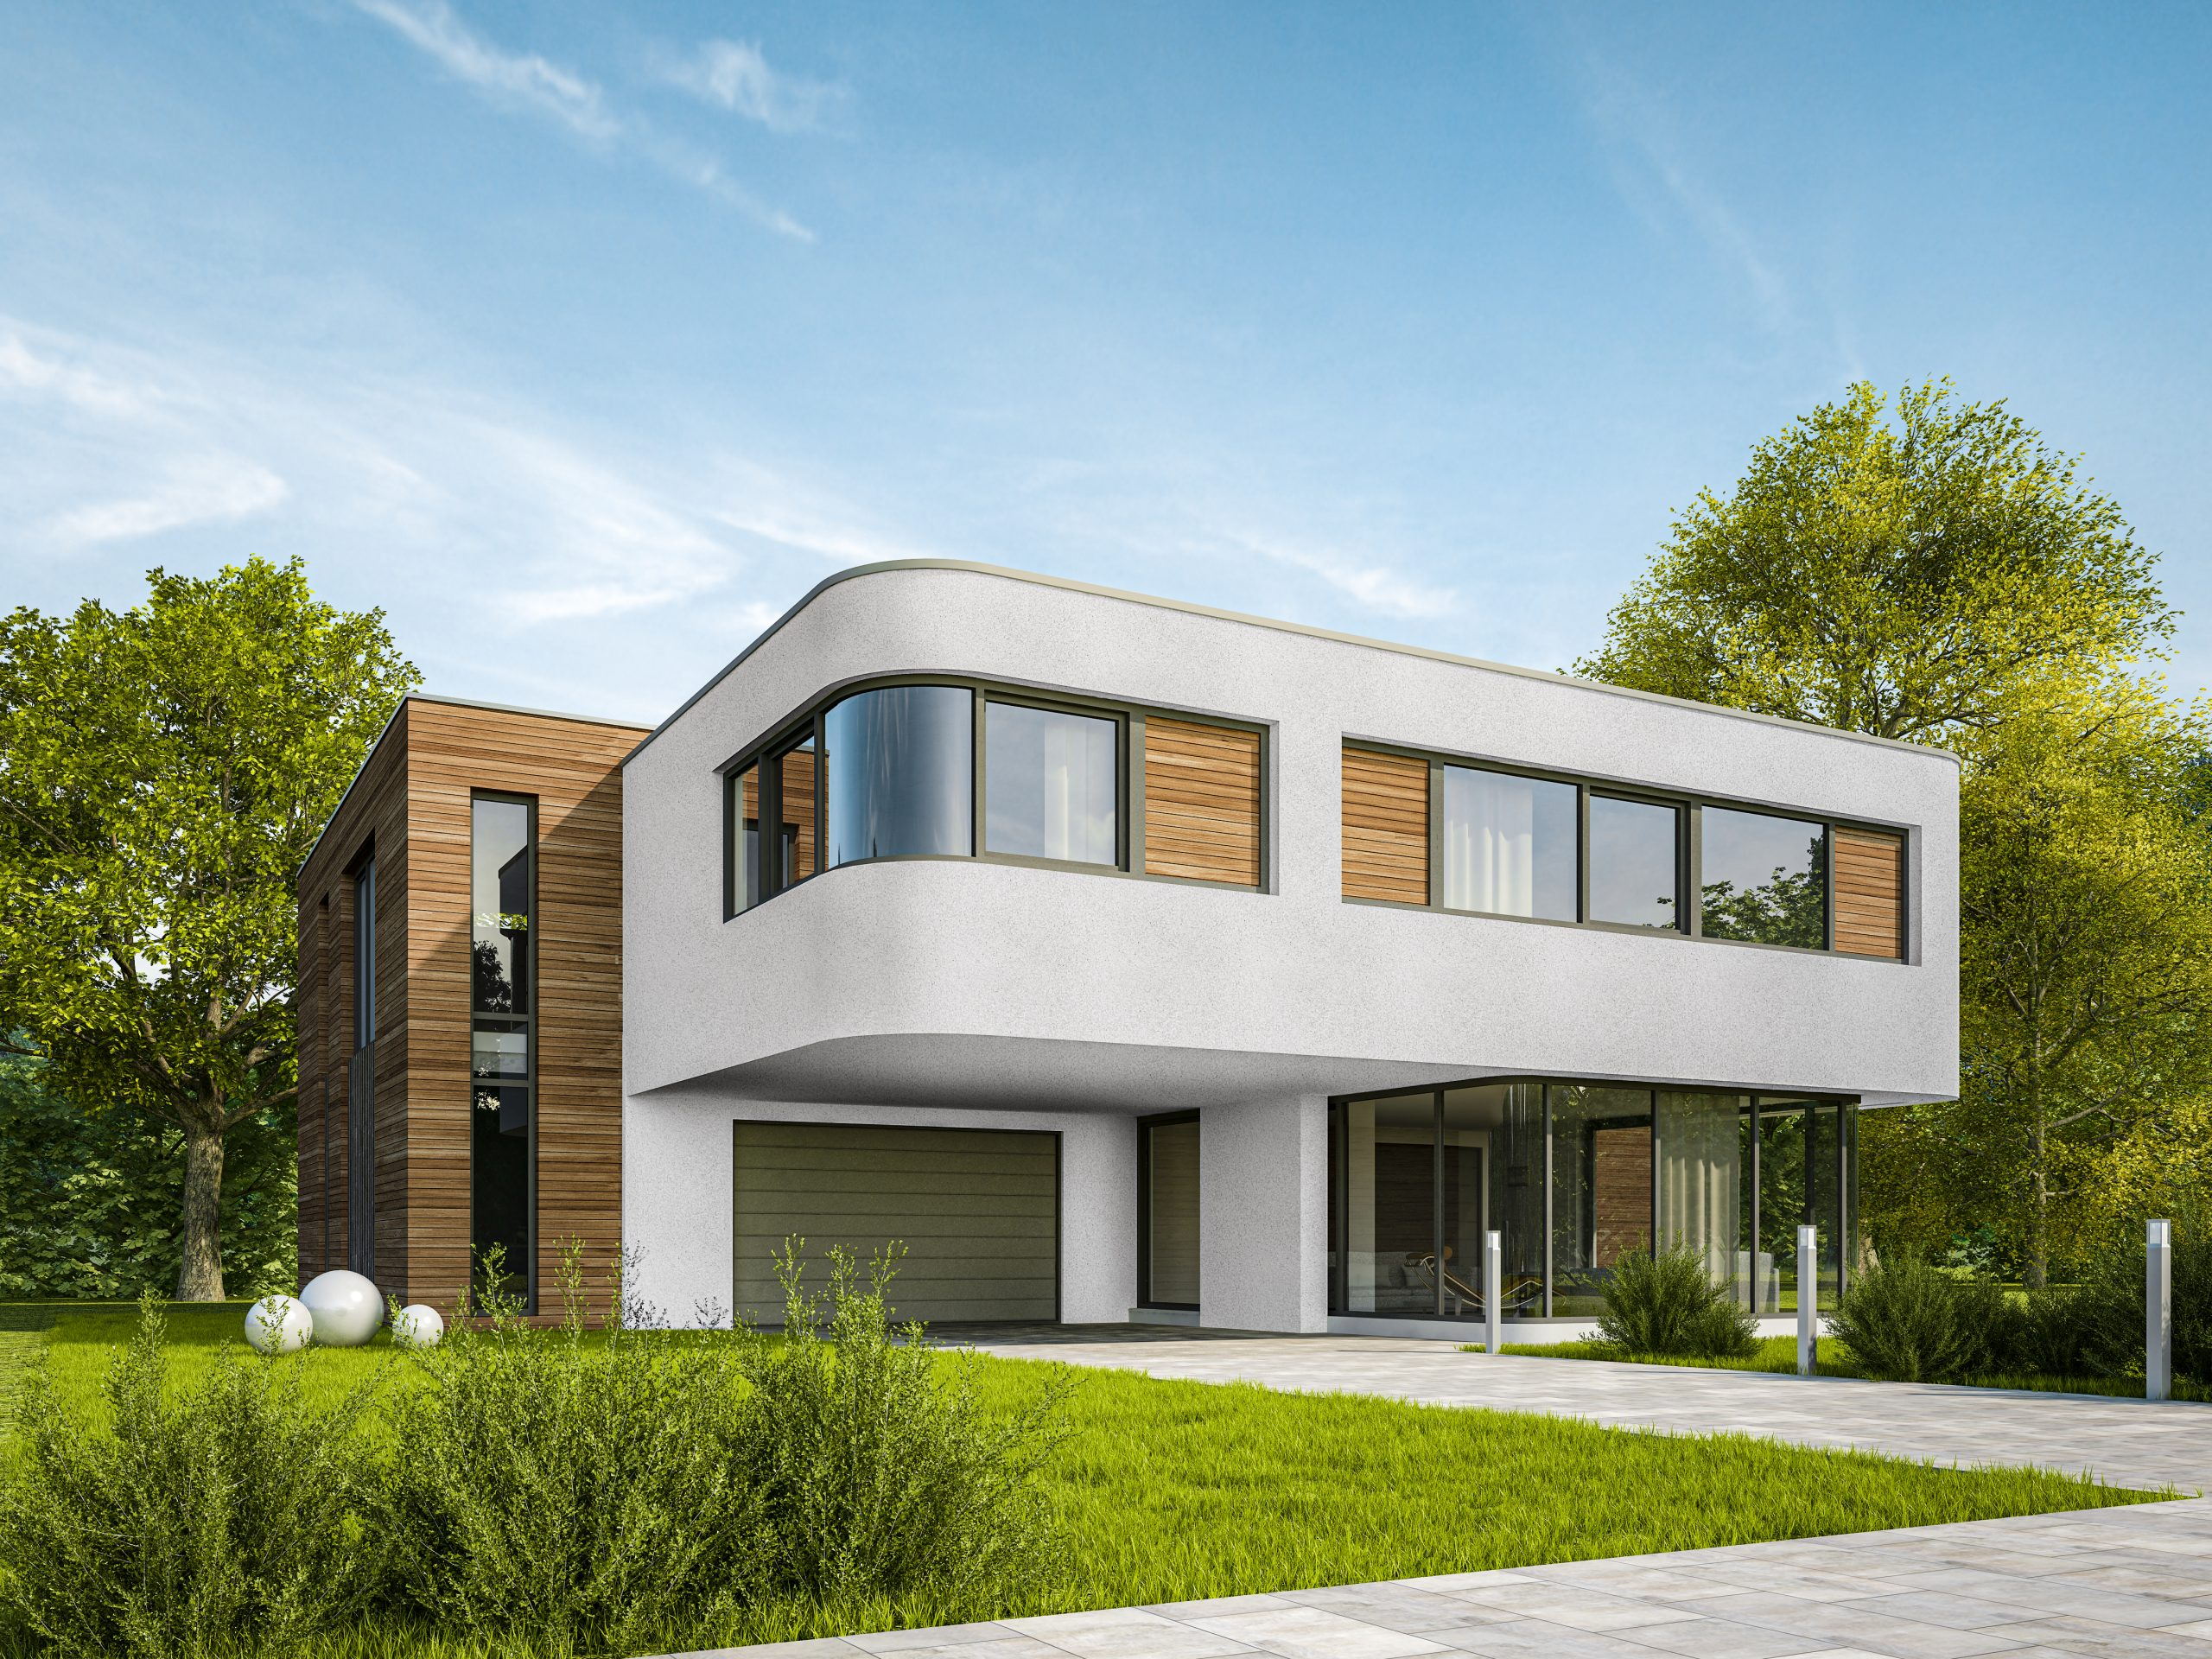 3D rendering of a modern villa with wooden elements